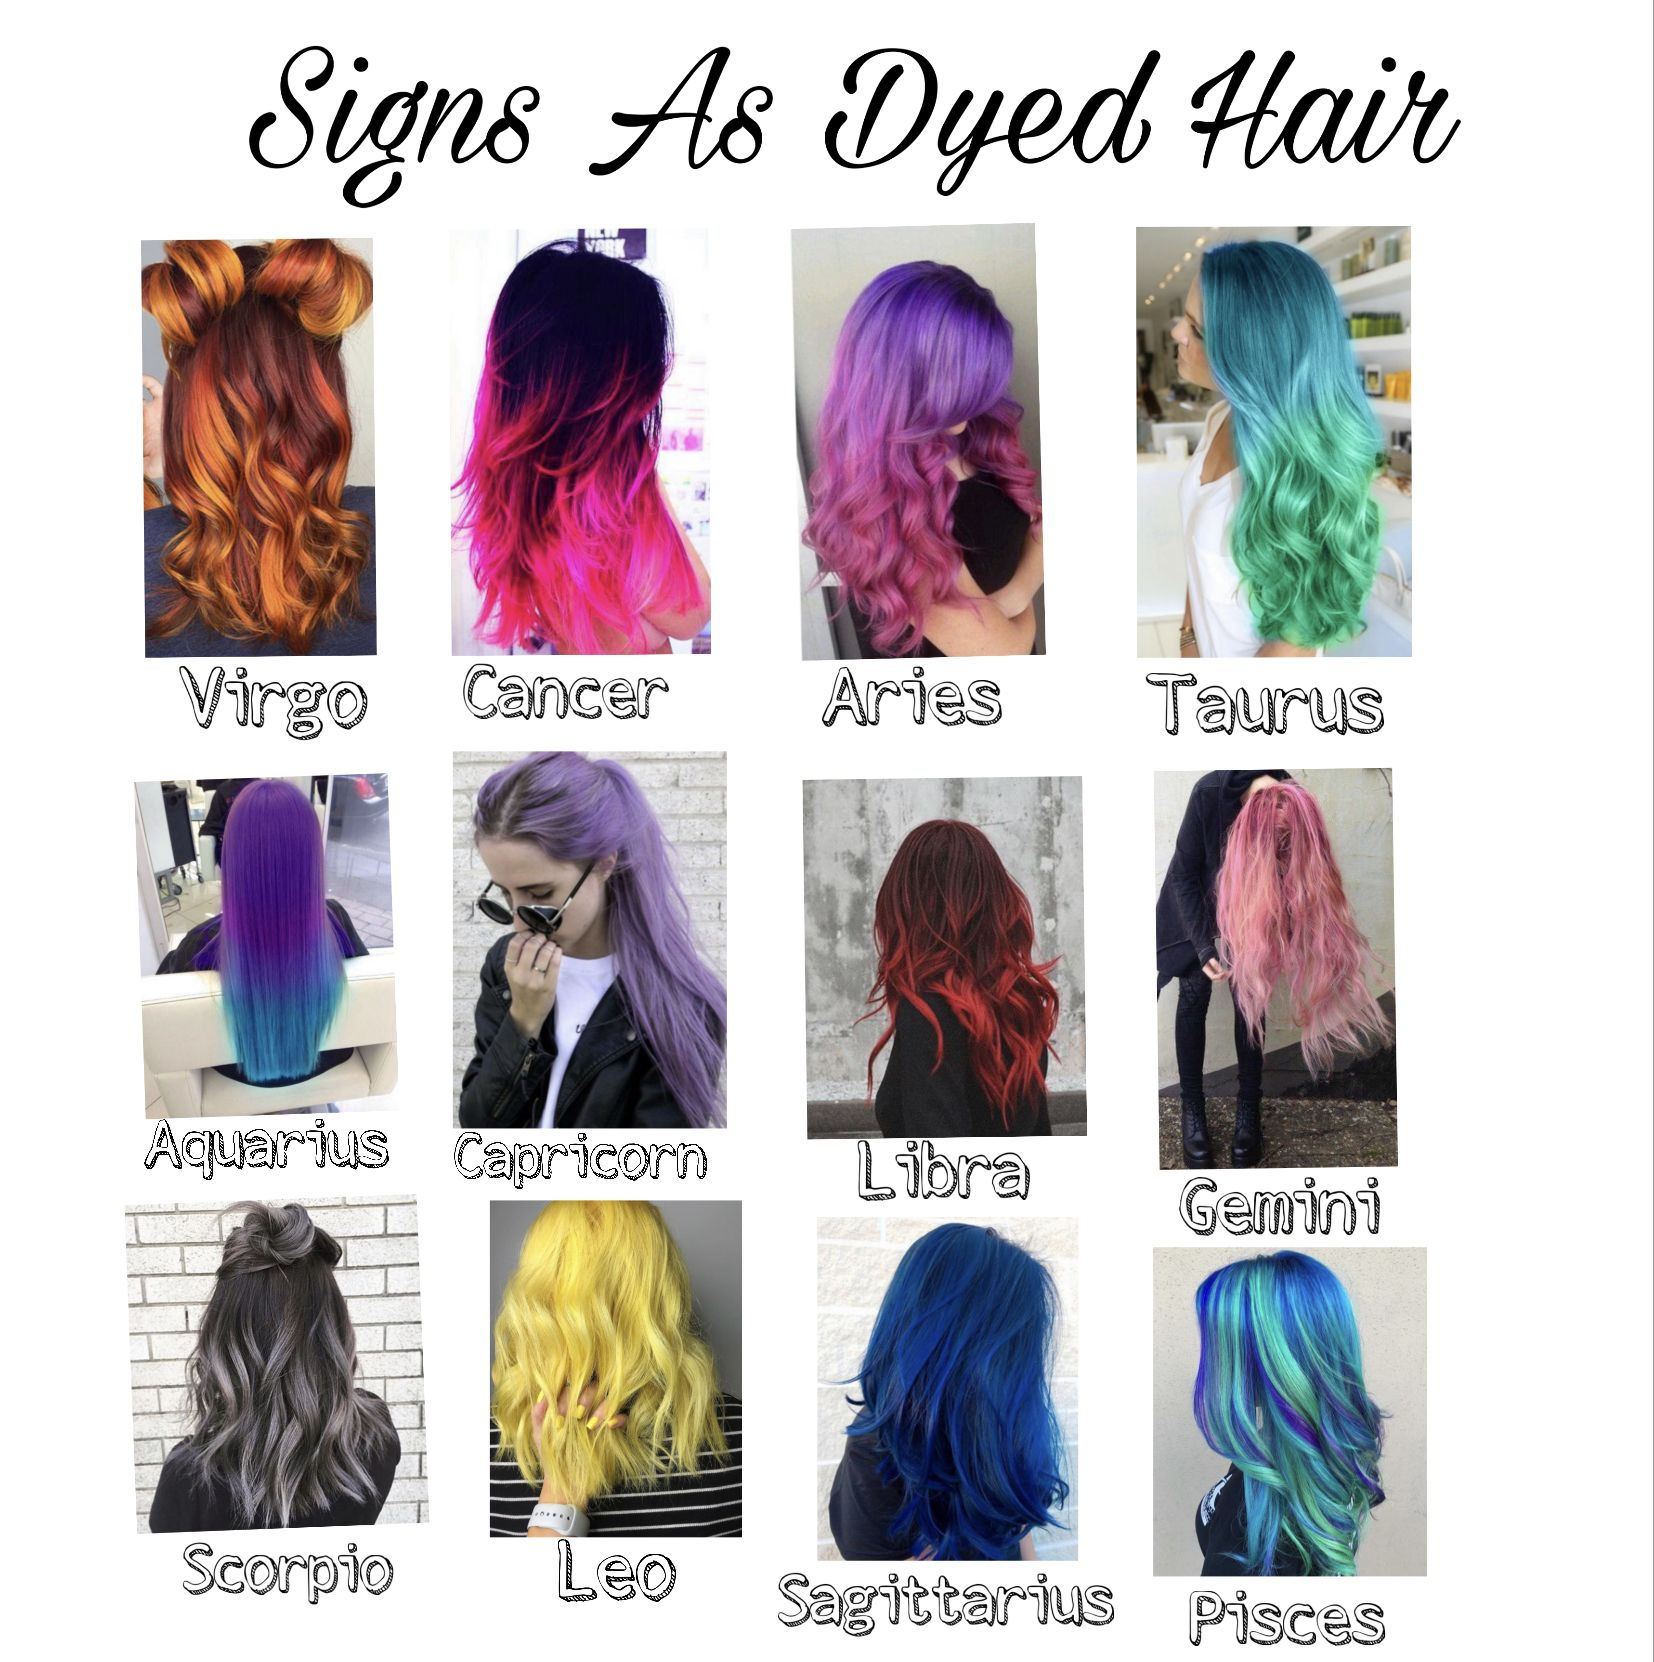 Pin By Abby Veteto On Hair Colors Hairstyles Zodiac Signs Zodiac Sign Fashion Zodiac Signs Sagittarius